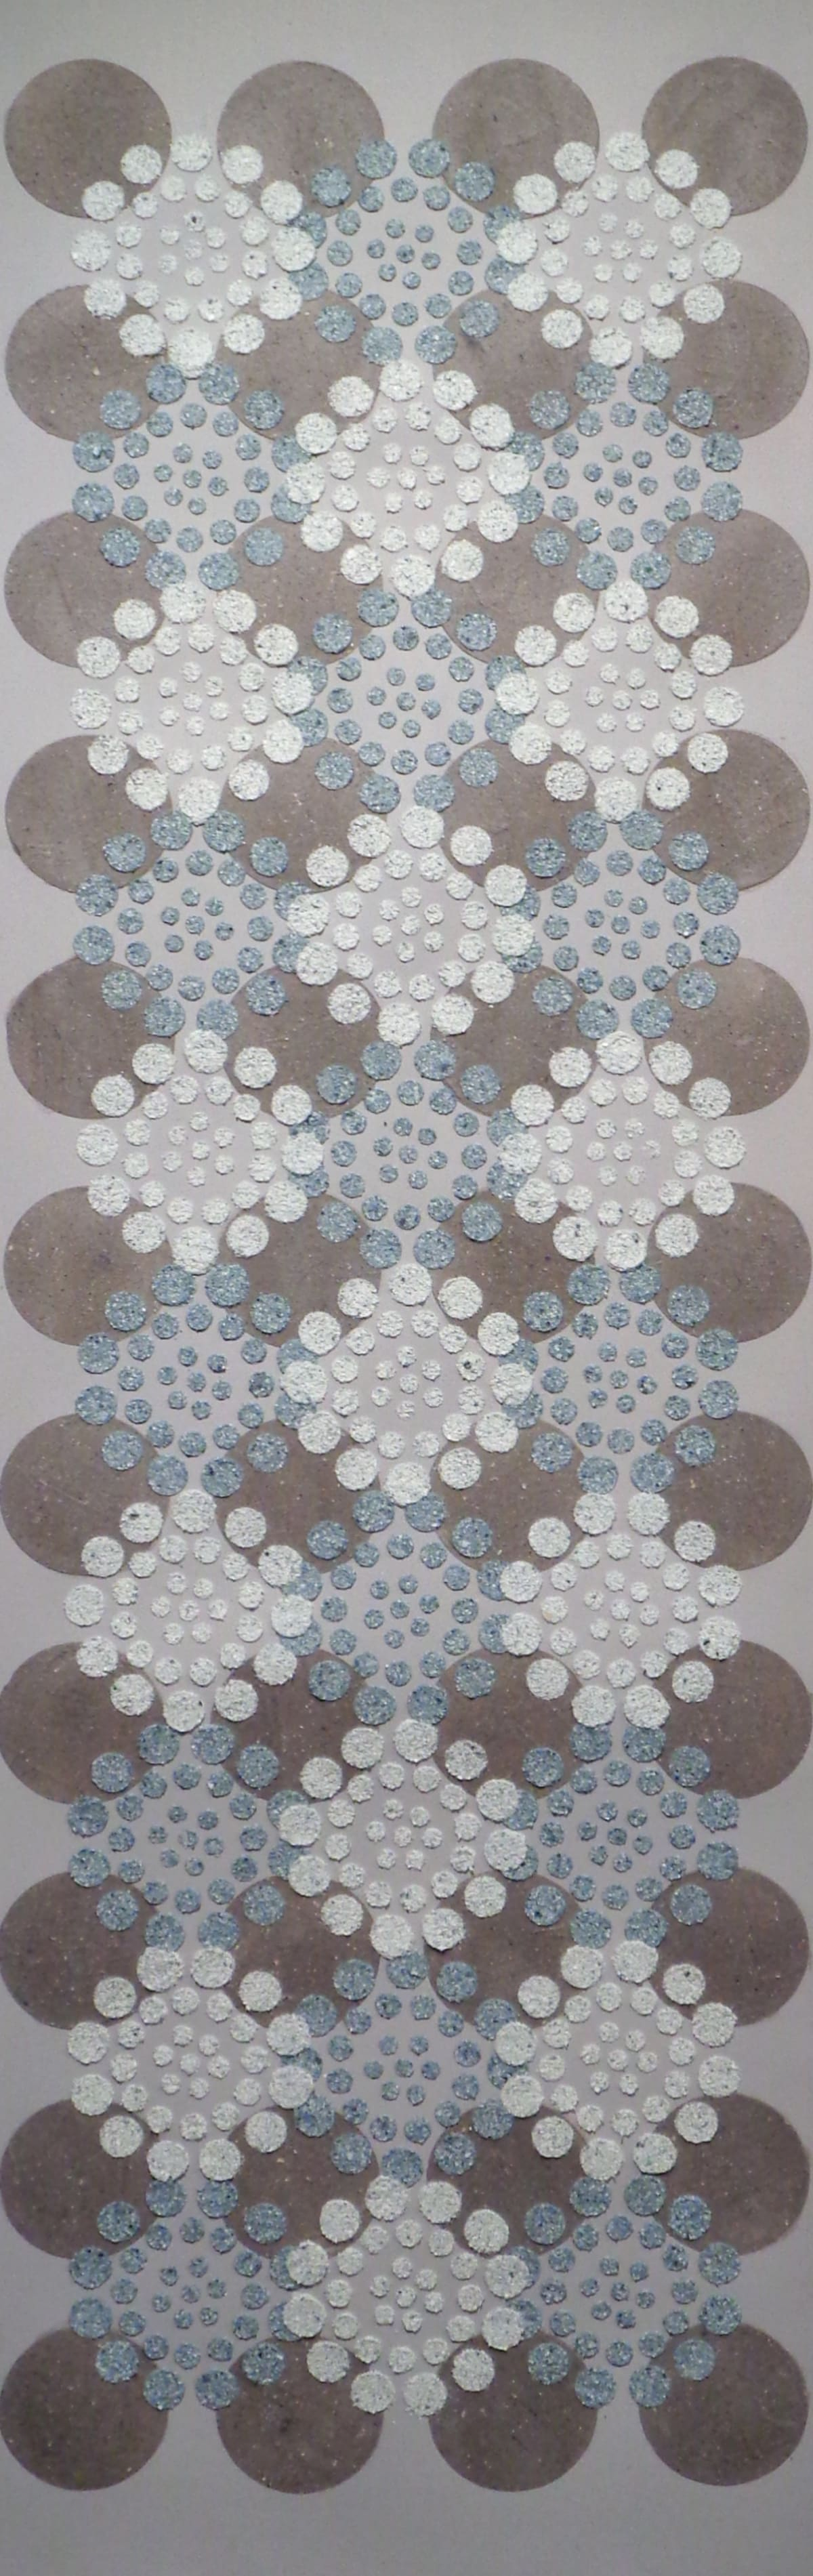 Eleanor White Blue Brown Dots, 2018